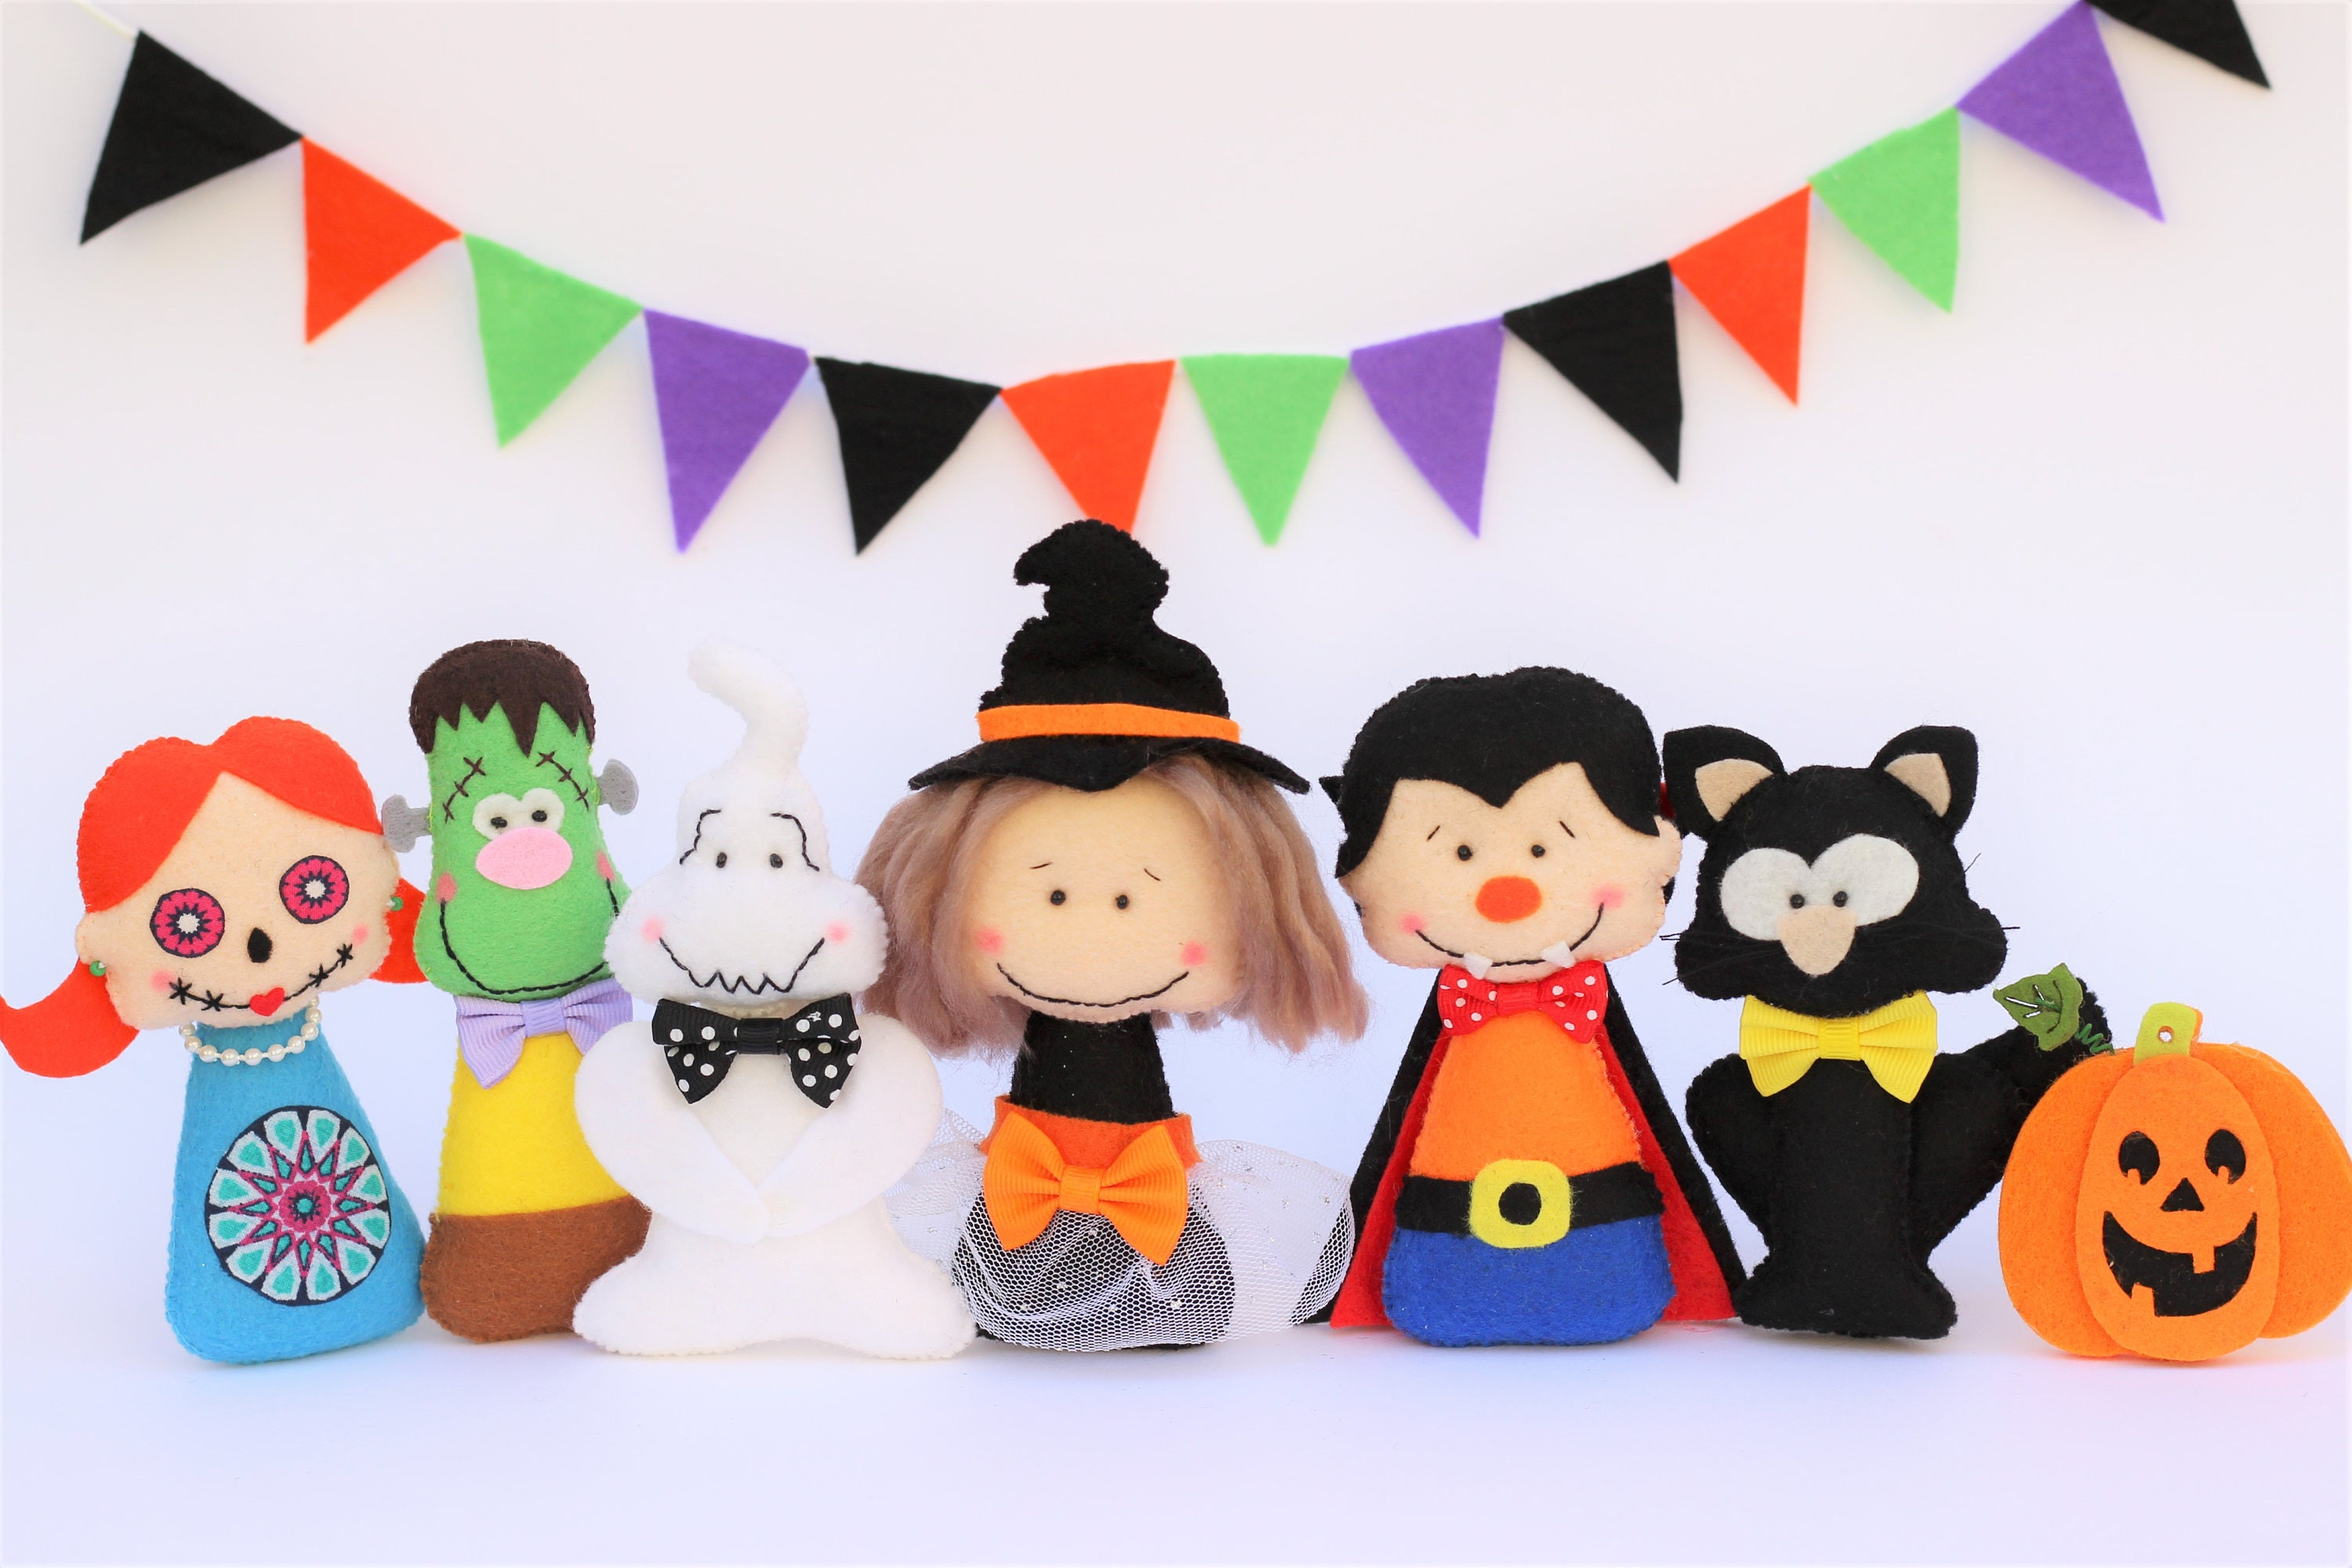 Mu ecos de fieltro decoraci n halloween peluches monstros for Articulos decoracion halloween